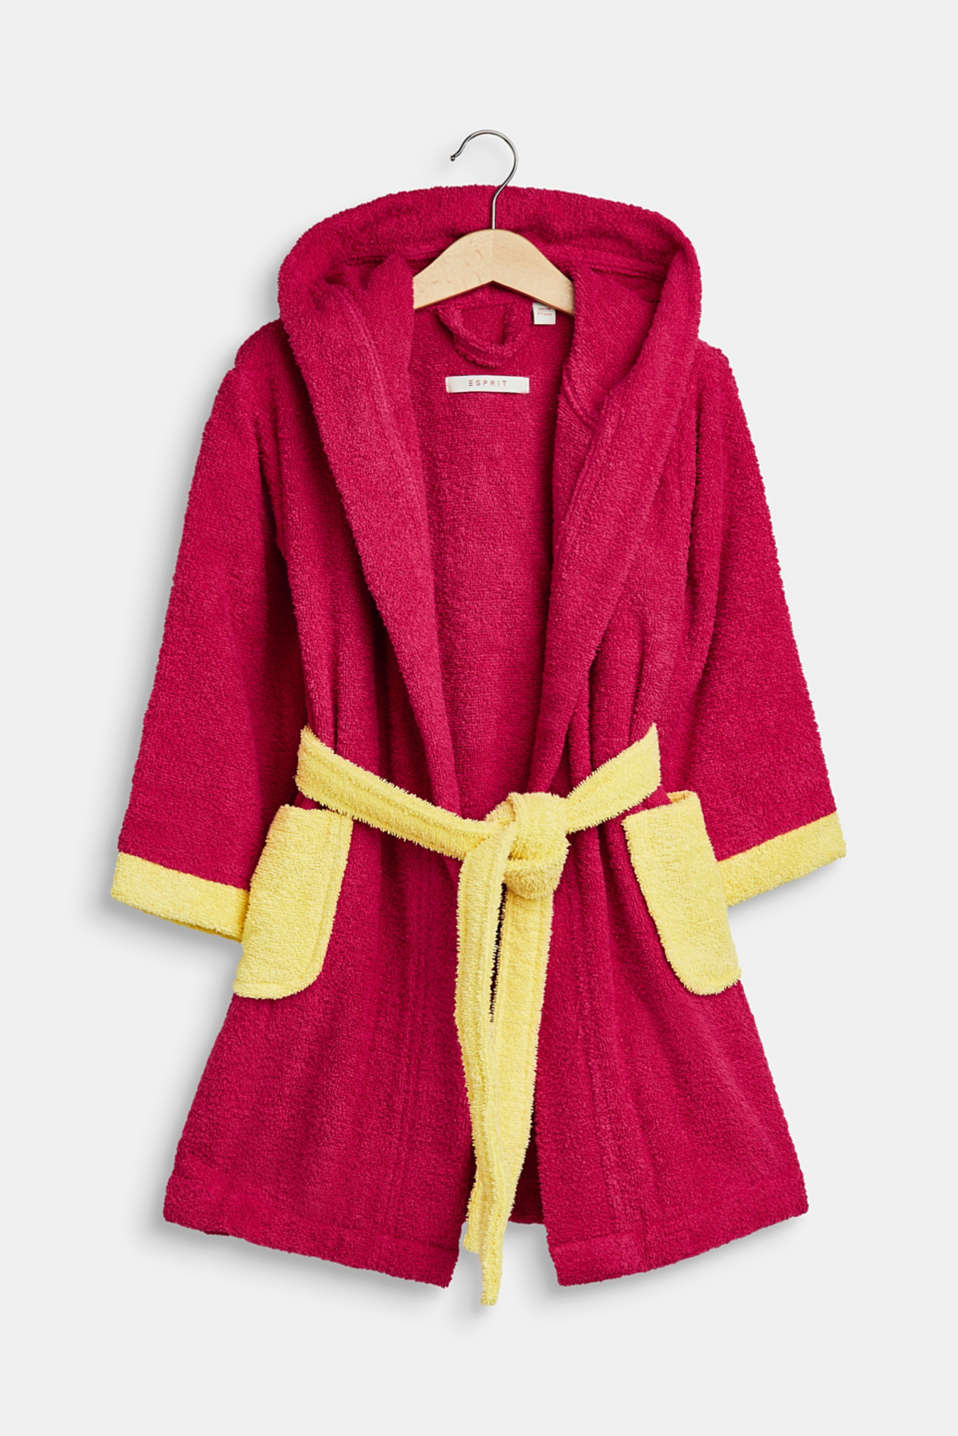 Children's bathrobe in 100% cotton, RASPBERRY/YELLOW, detail image number 0